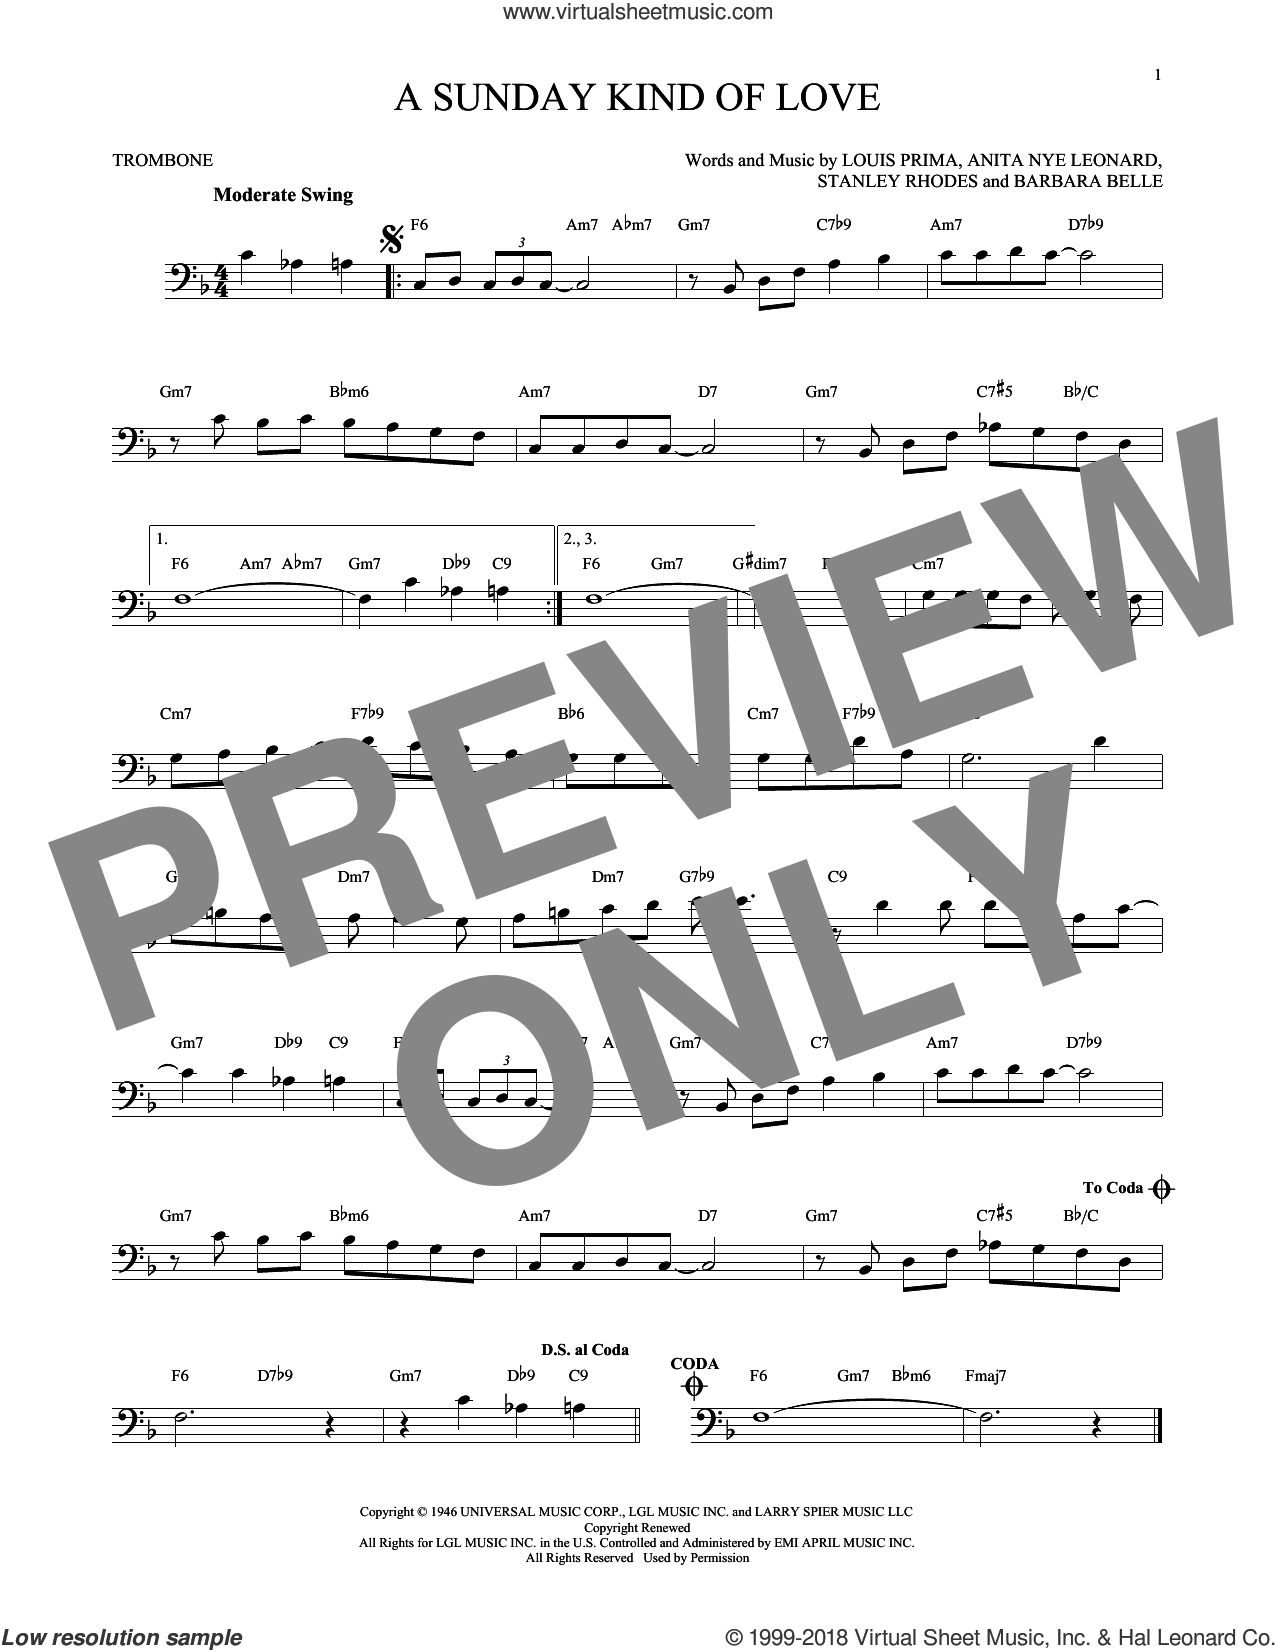 A Sunday Kind Of Love sheet music for trombone solo by Etta James, Reba McEntire, Anita Nye Leonard, Barbara Belle, Louis Prima and Stanley Rhodes, intermediate skill level